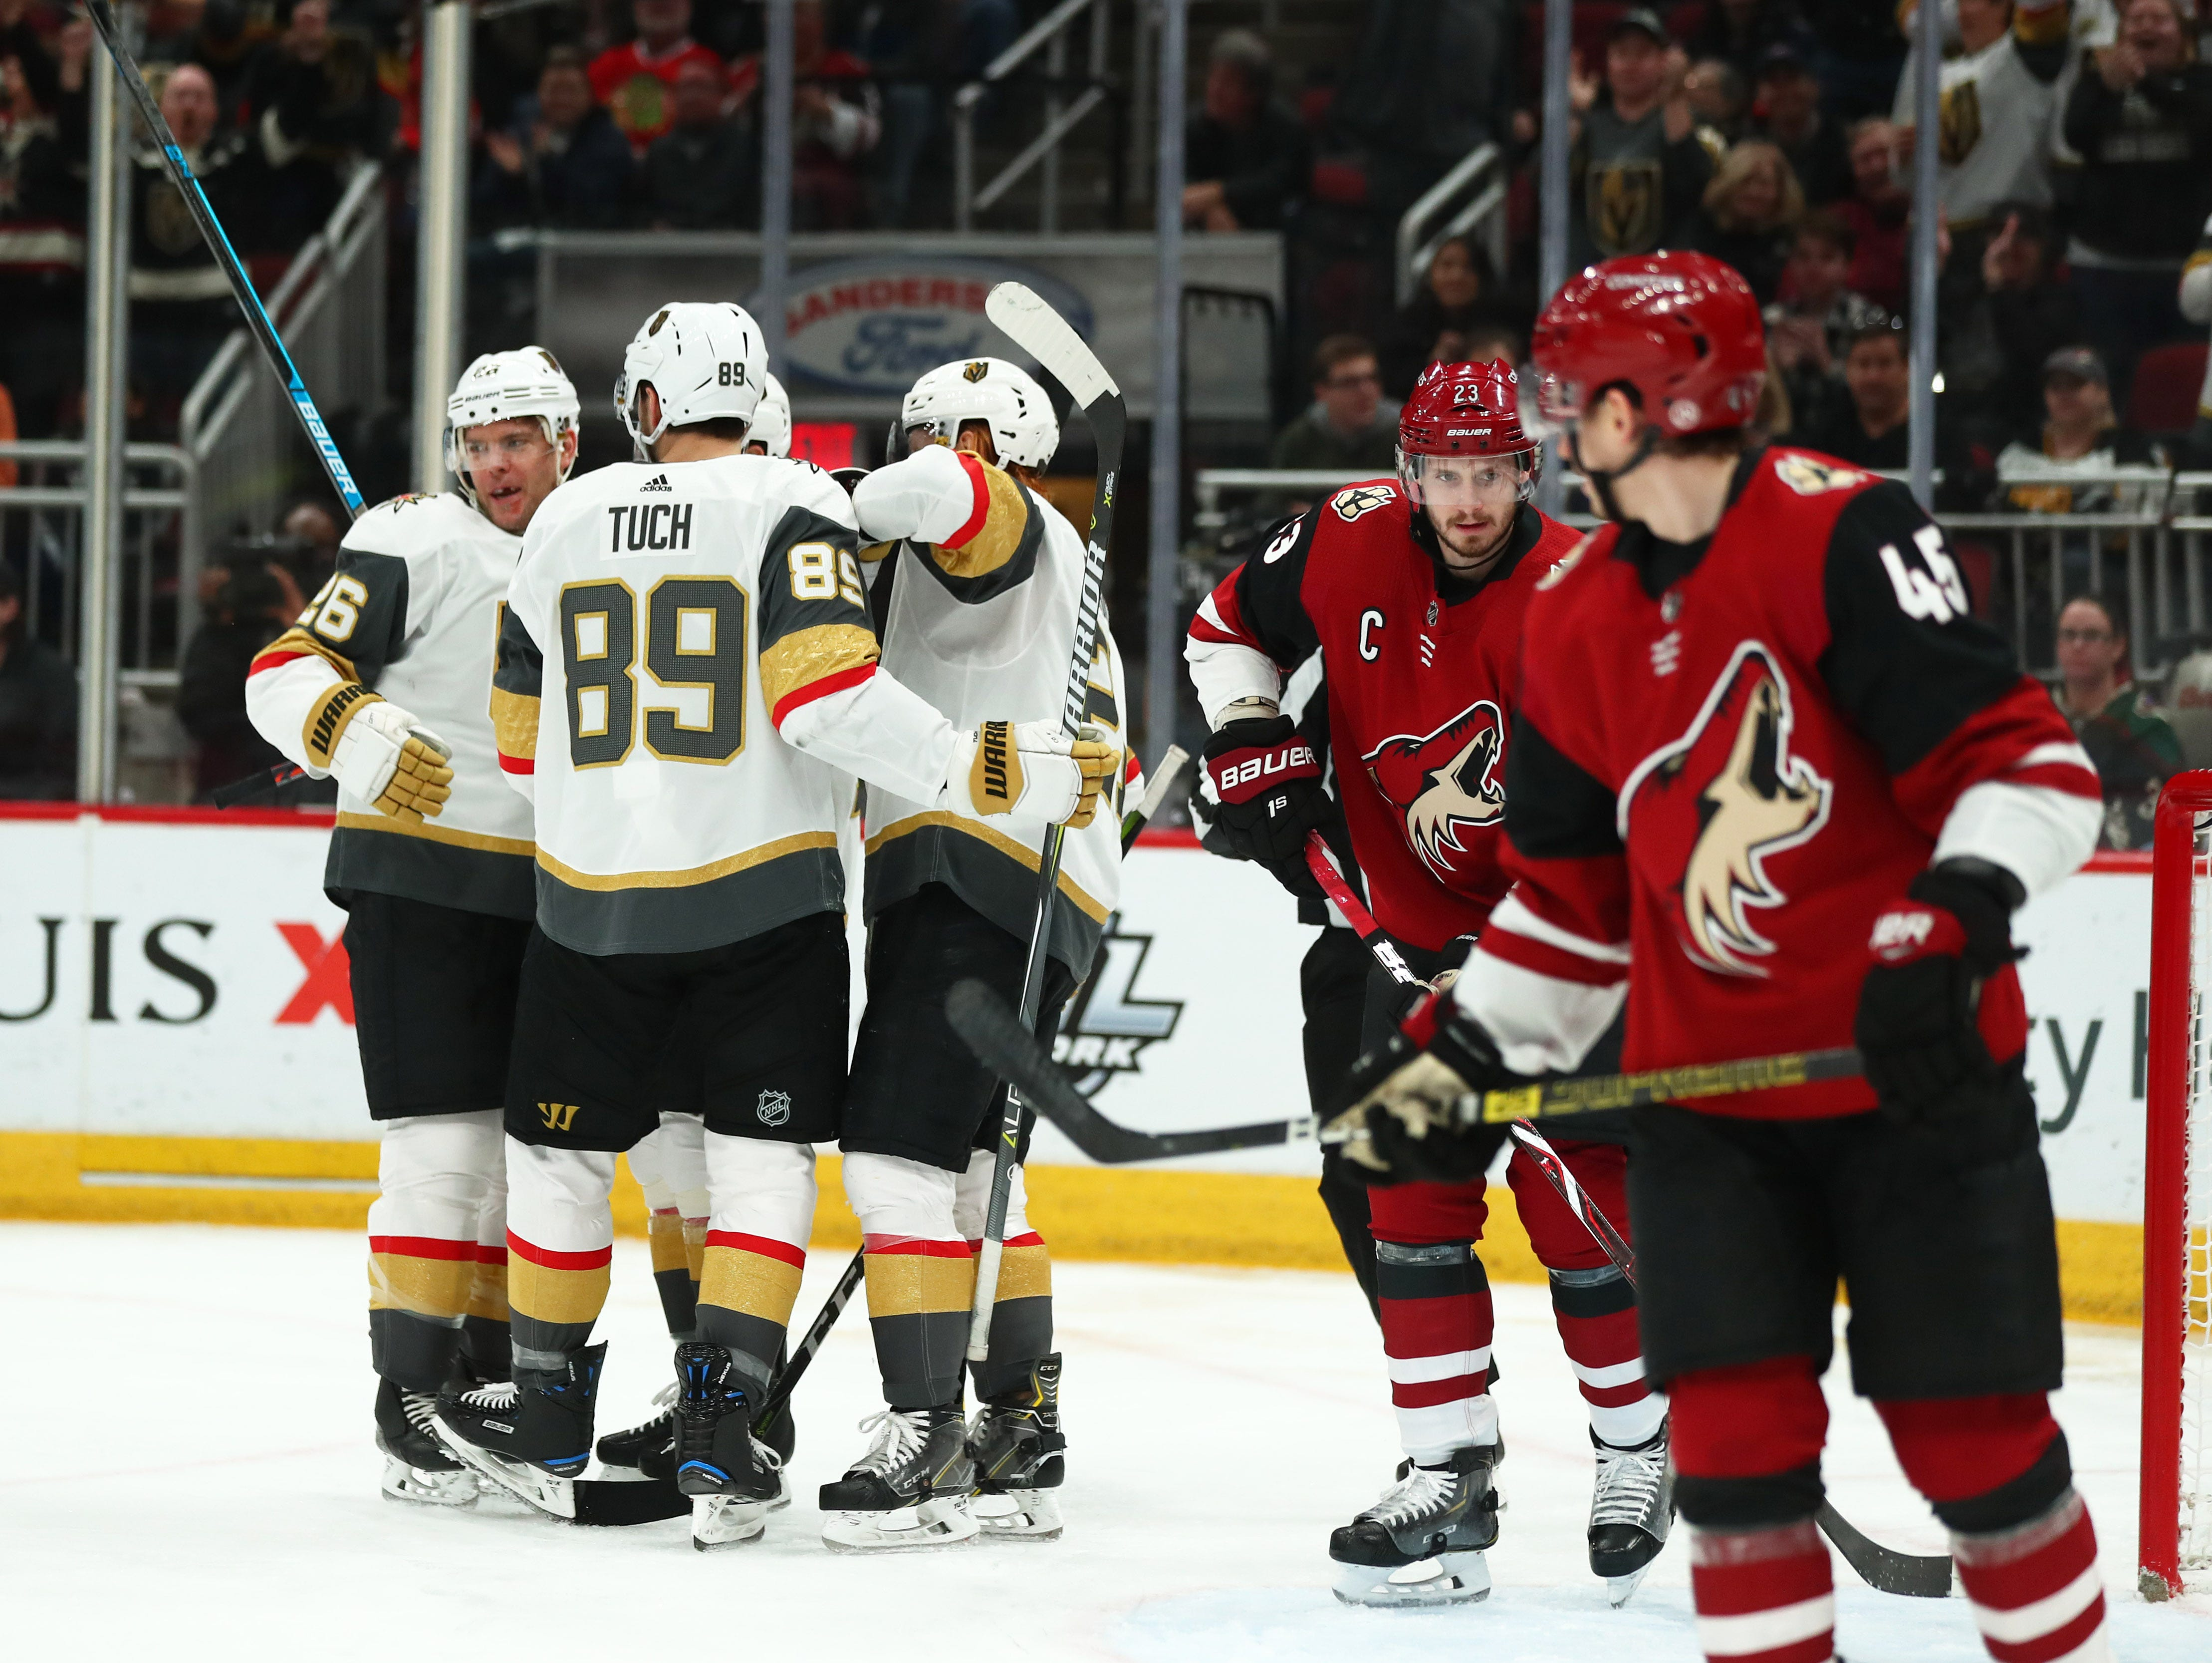 Dec 30, 2018; Glendale, AZ, USA; Vegas Golden Knights center Paul Stastny (26) celebrates with teammates after scoring a first period goal against the Arizona Coyotes at Gila River Arena. Mandatory Credit: Mark J. Rebilas-USA TODAY Sports